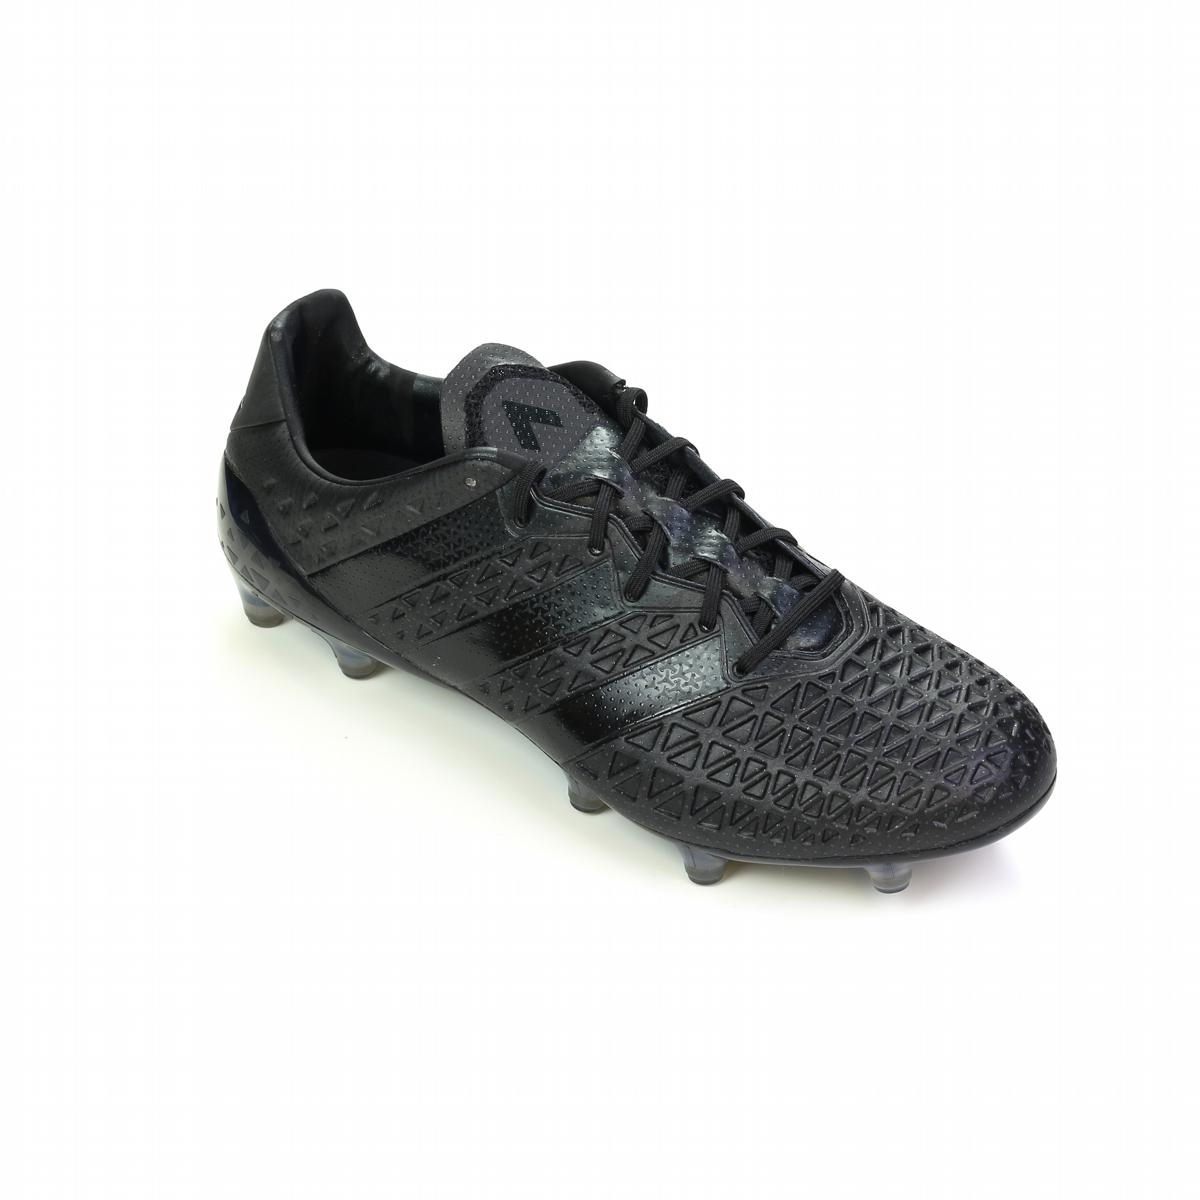 Adidas Ace 16.1 Fluid Black